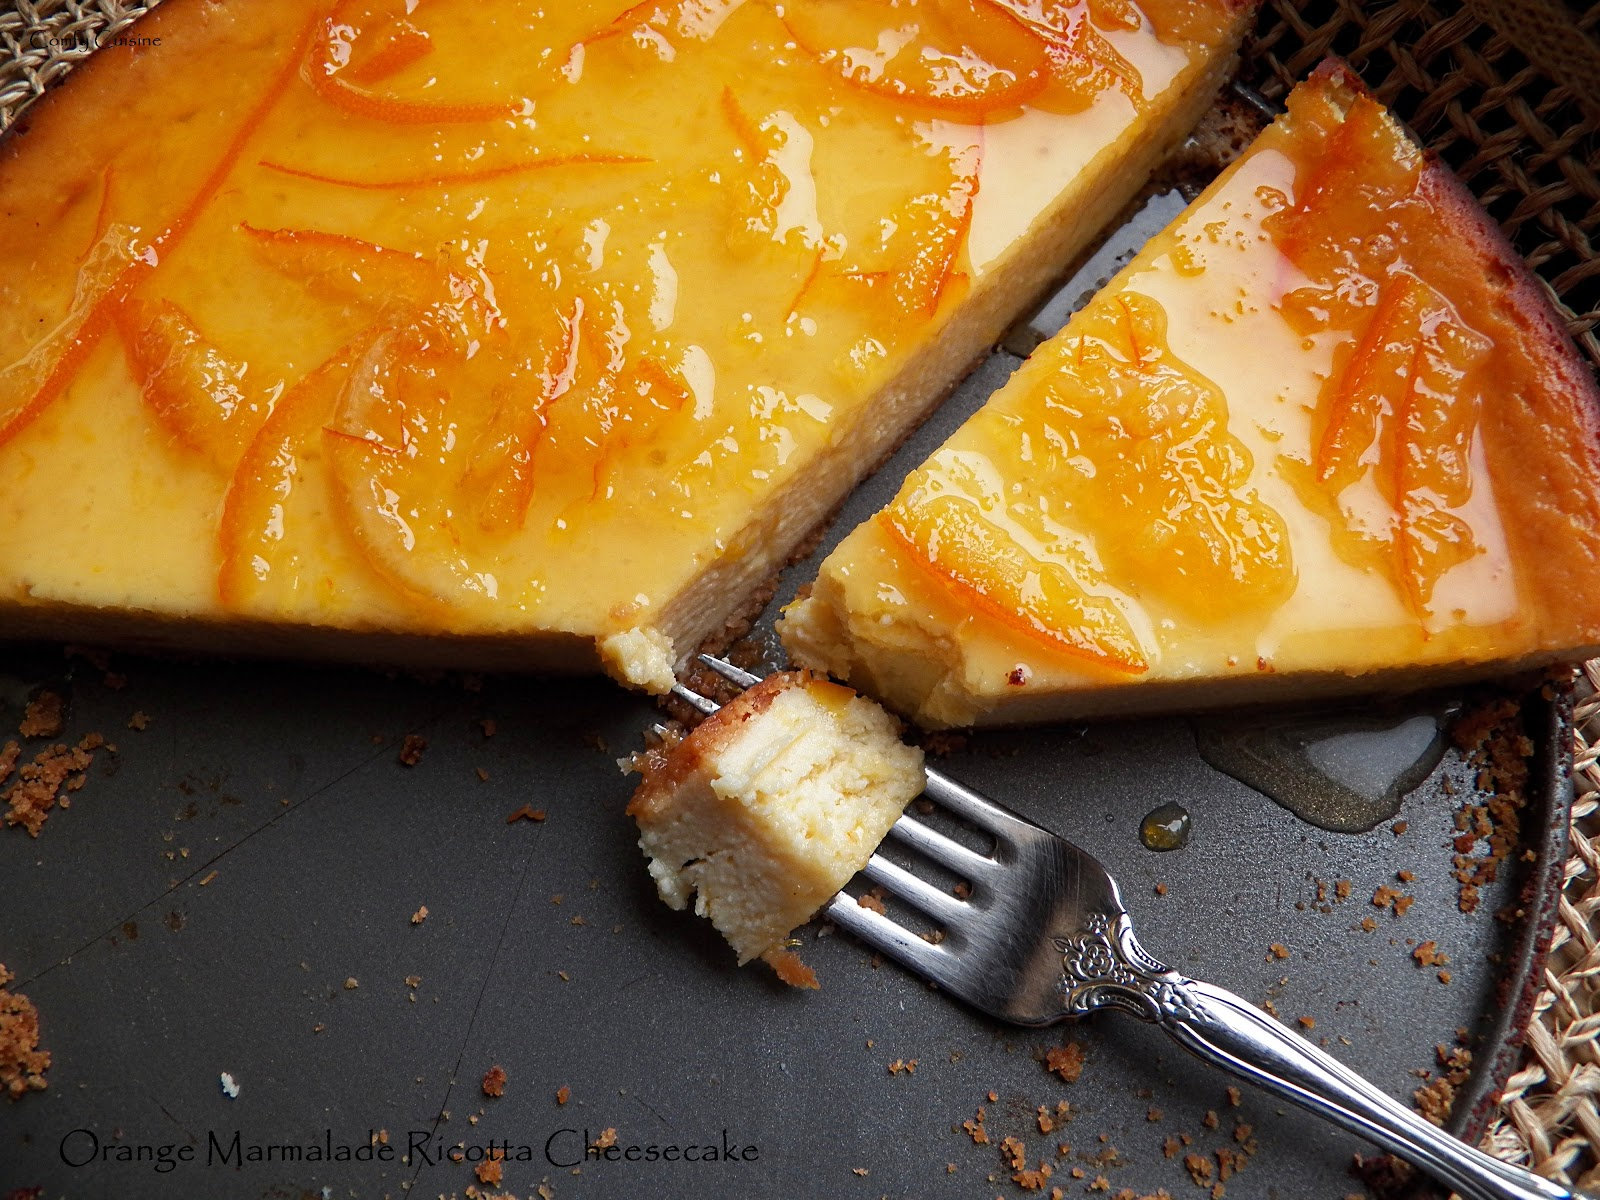 ... ricotta cheesecake ricotta cheesecake ricotta cheesecake orange